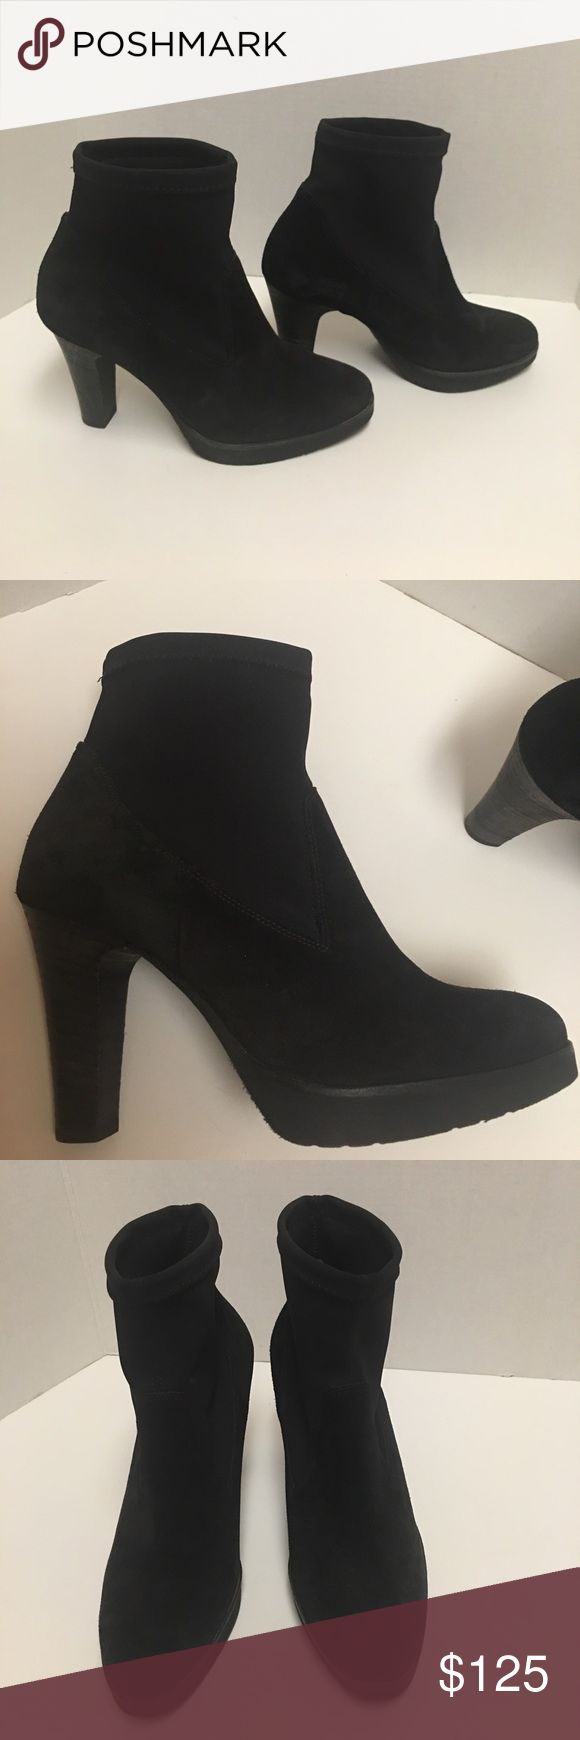 Selling this New Paul green black suede and nylon ankle boot on Poshmark! My username is: b287807. #shopmycloset #poshmark #fashion #shopping #style #forsale #Paul Green #Shoes